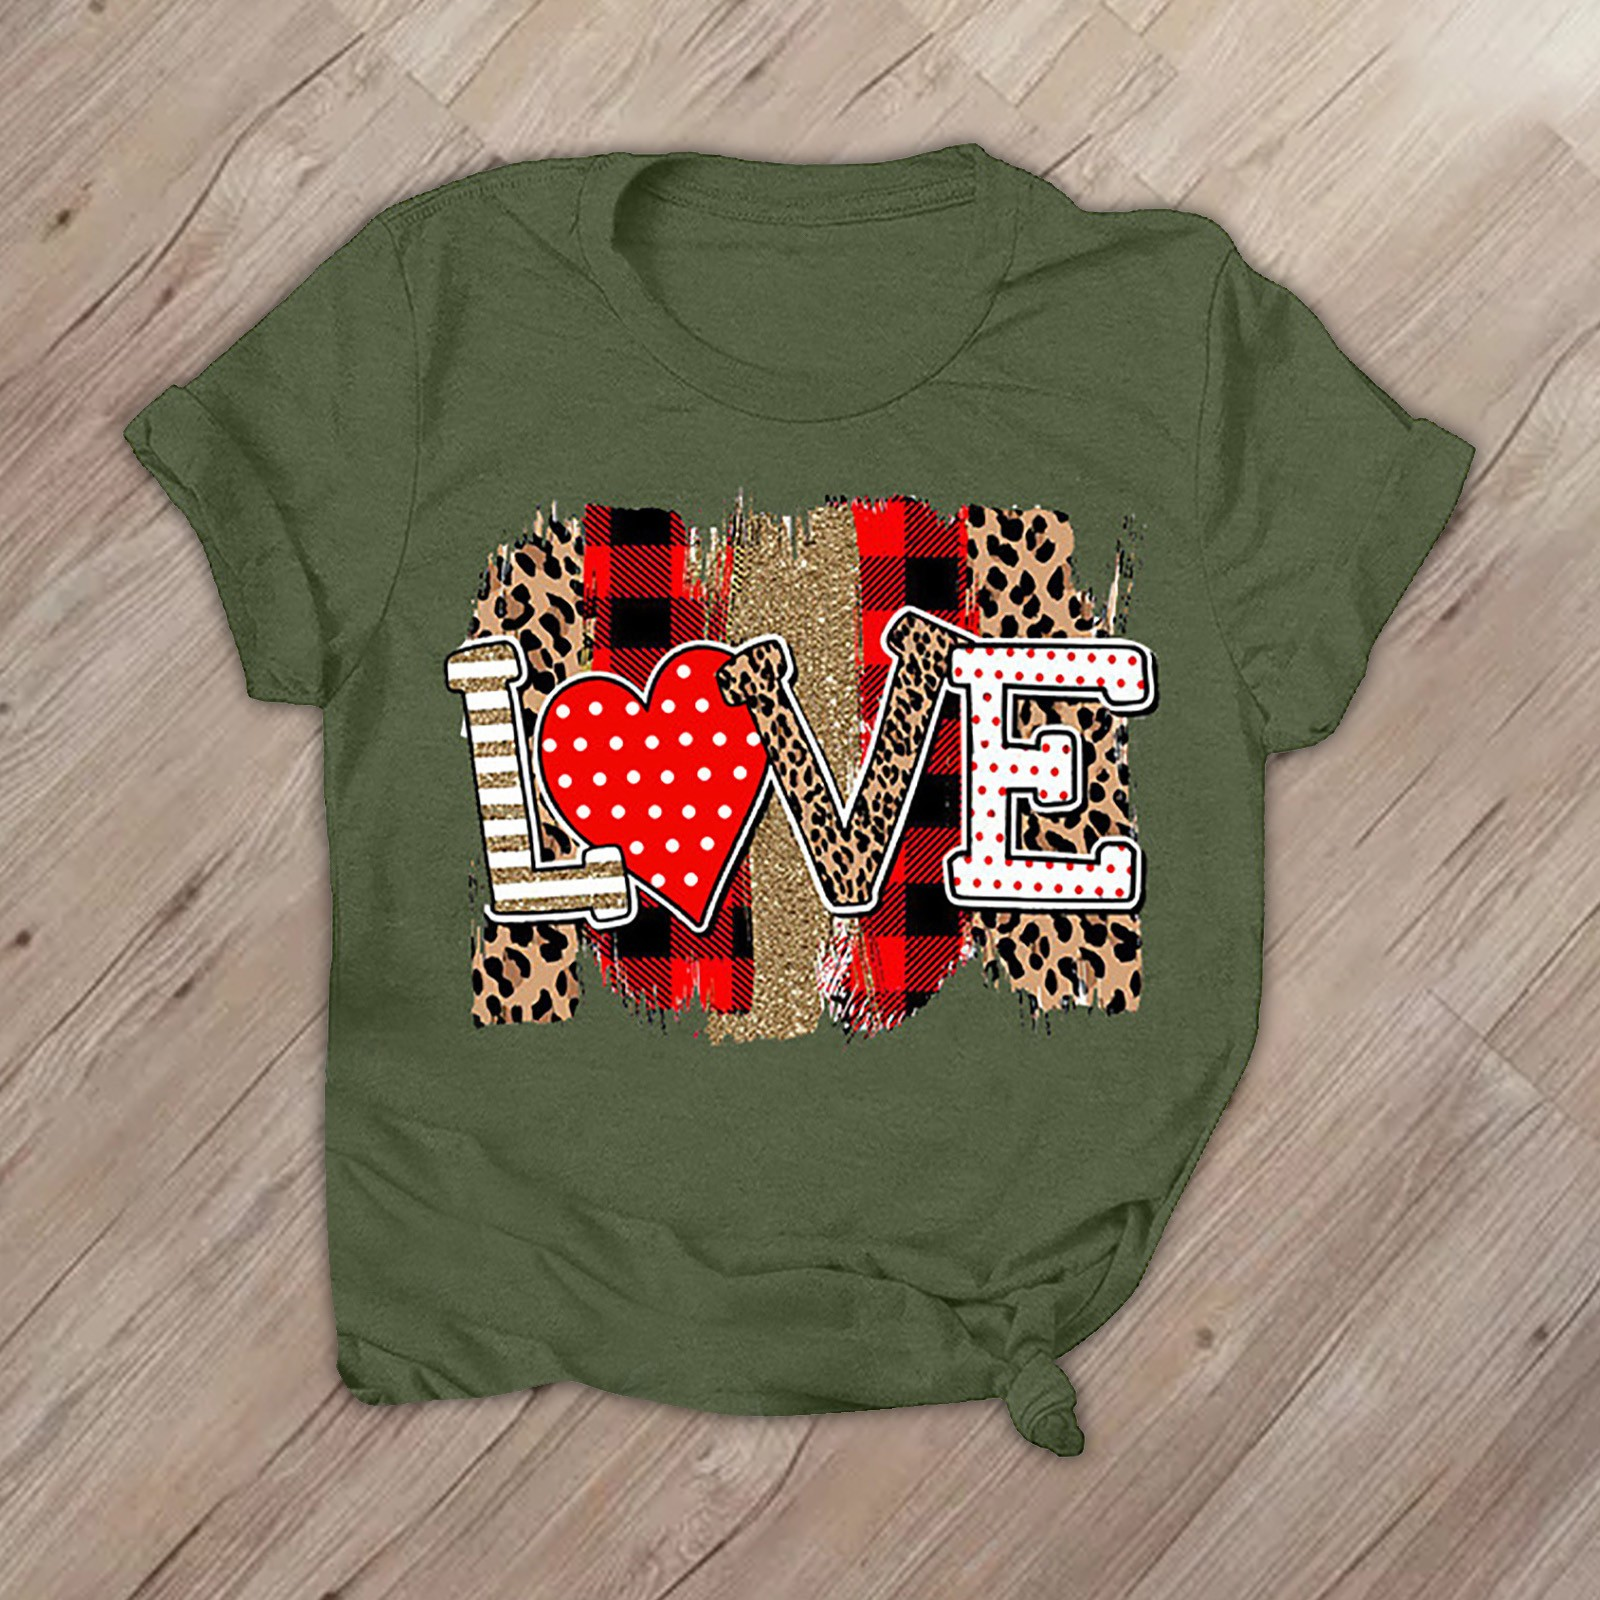 T-Shirt Fashion Valentine's-Day Short-Sleeves Top Summer Soft Love-Letters Women Print